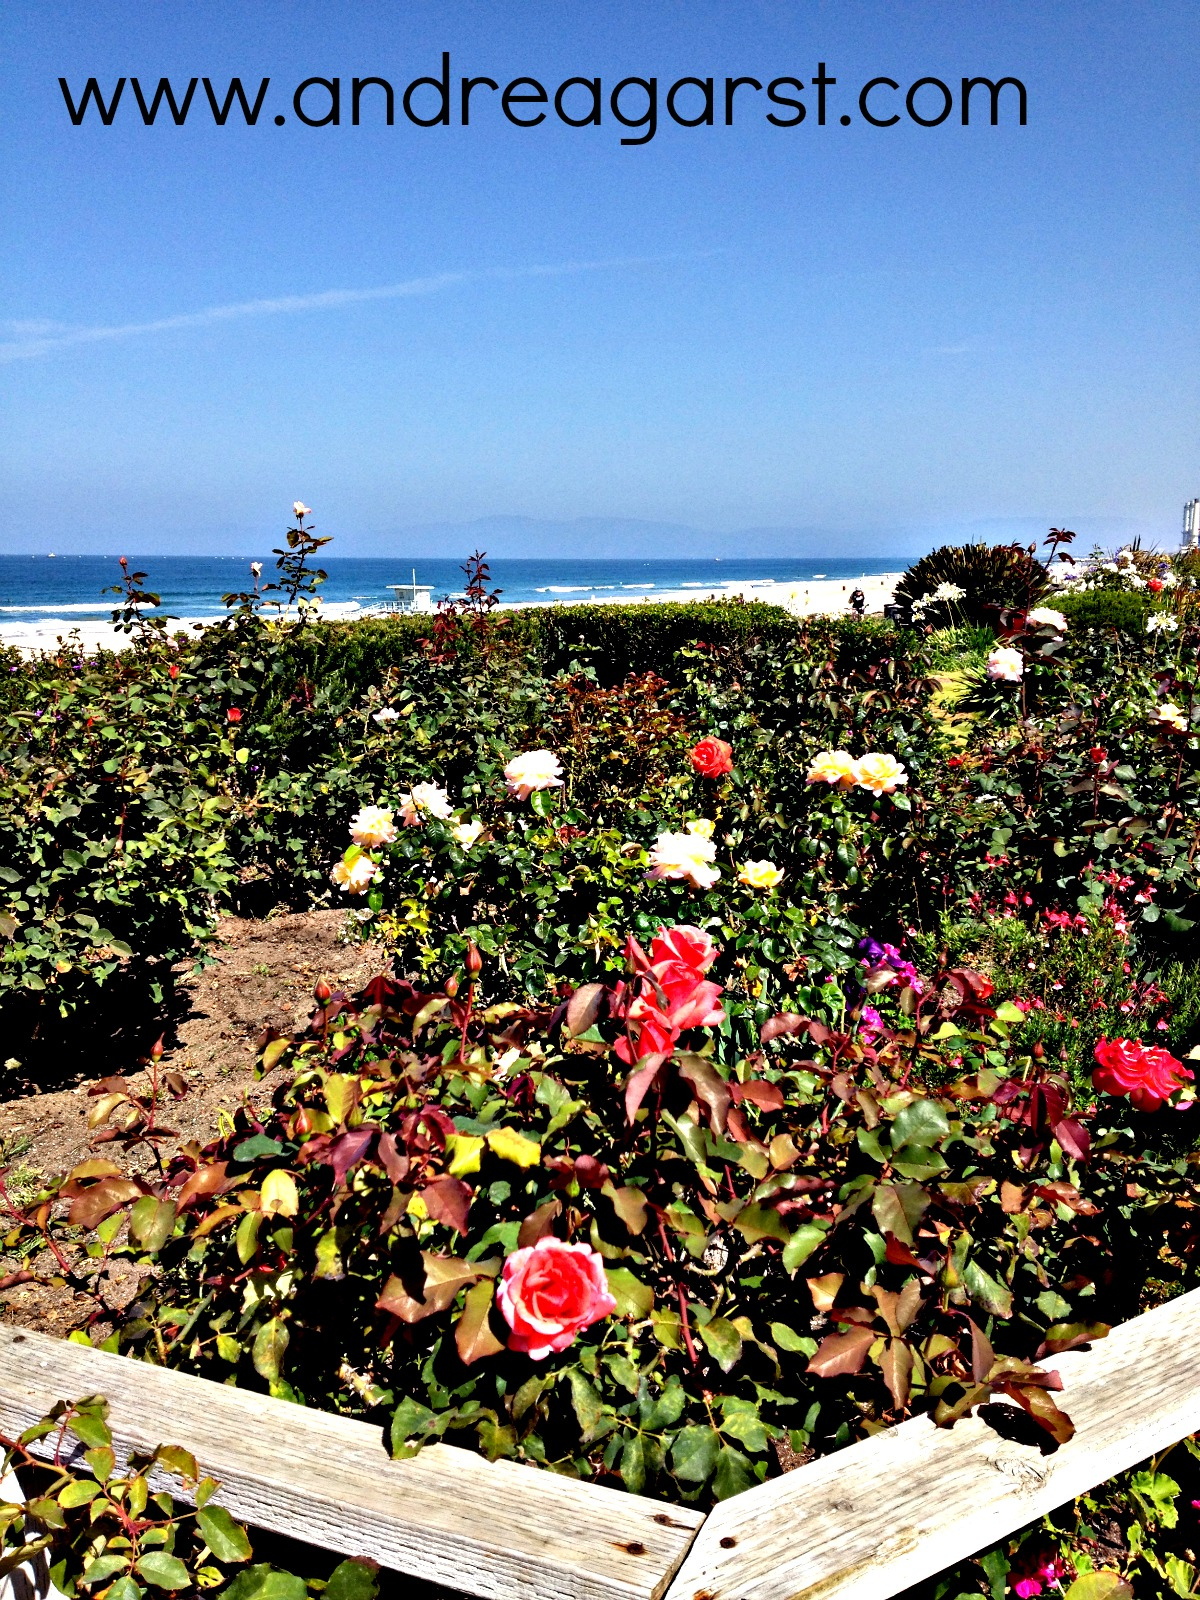 I love that the homeowners on the Strand plant so many types of roses. They look and smell amazing!